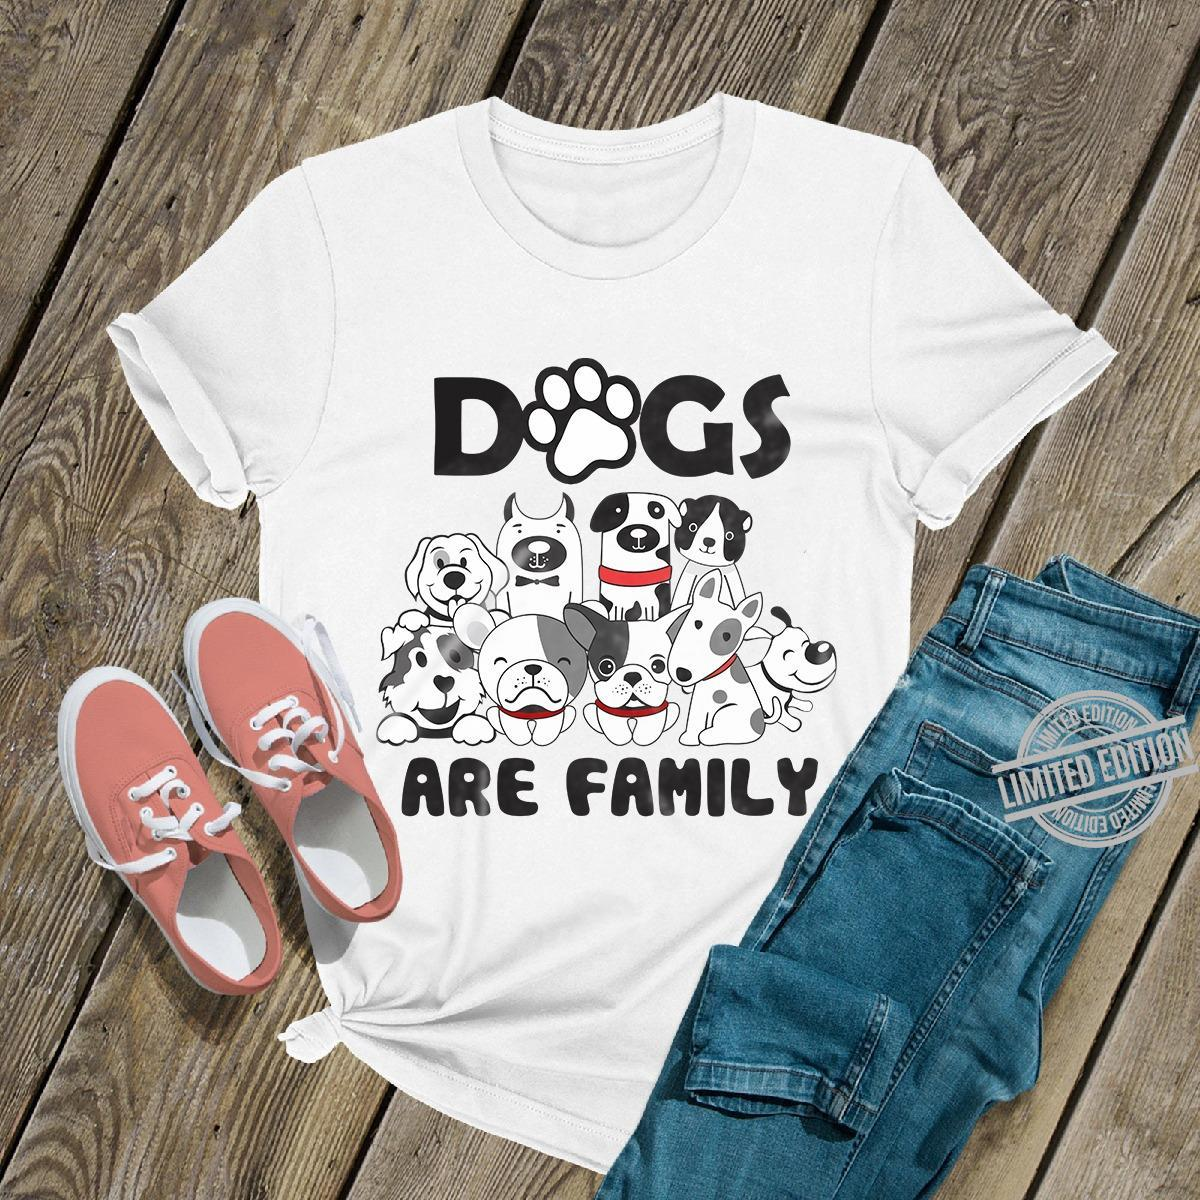 Dogs Are Family Shirt